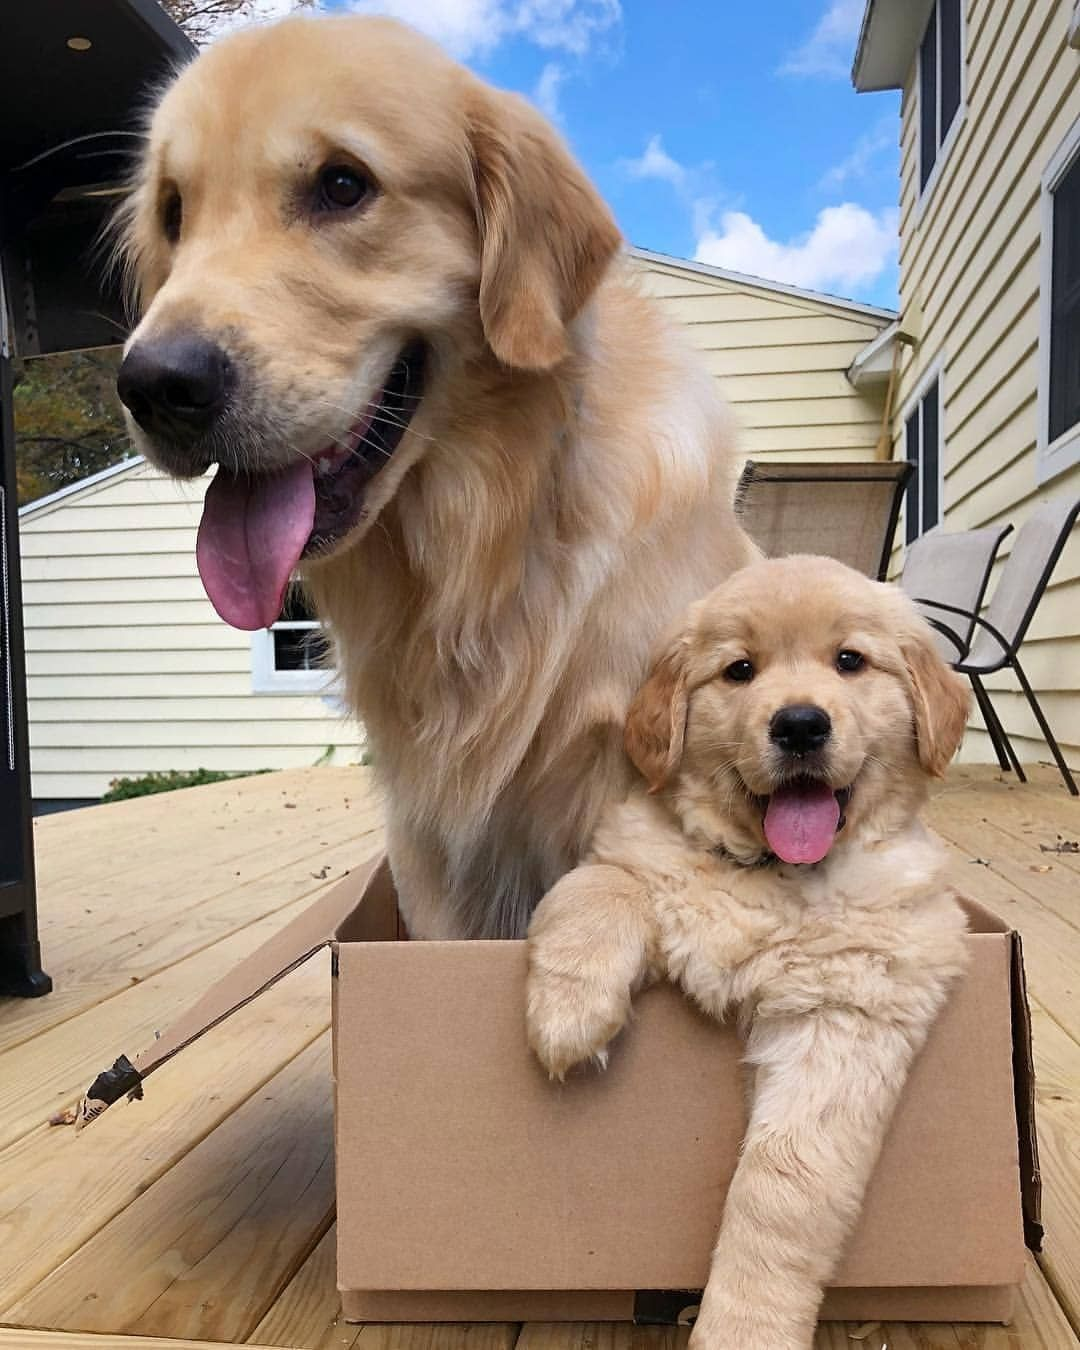 Pin By Rebecca F On Animal Planet Cute Animals Cute Dogs Dogs